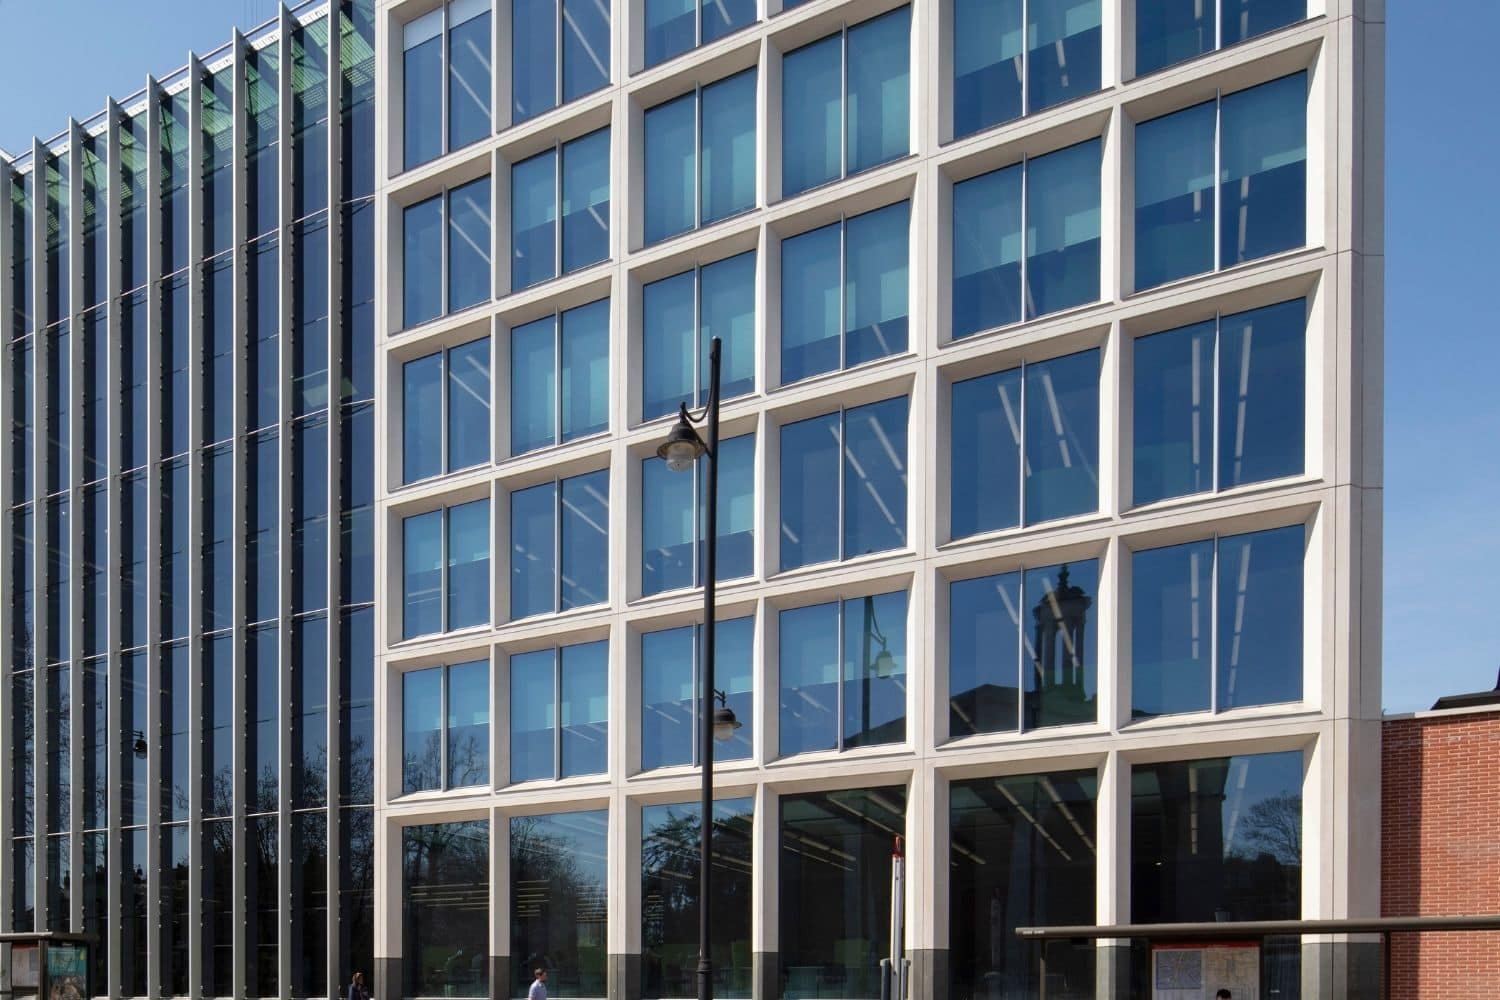 Large commercial building in London using electrochromic glass as a solar shading solution